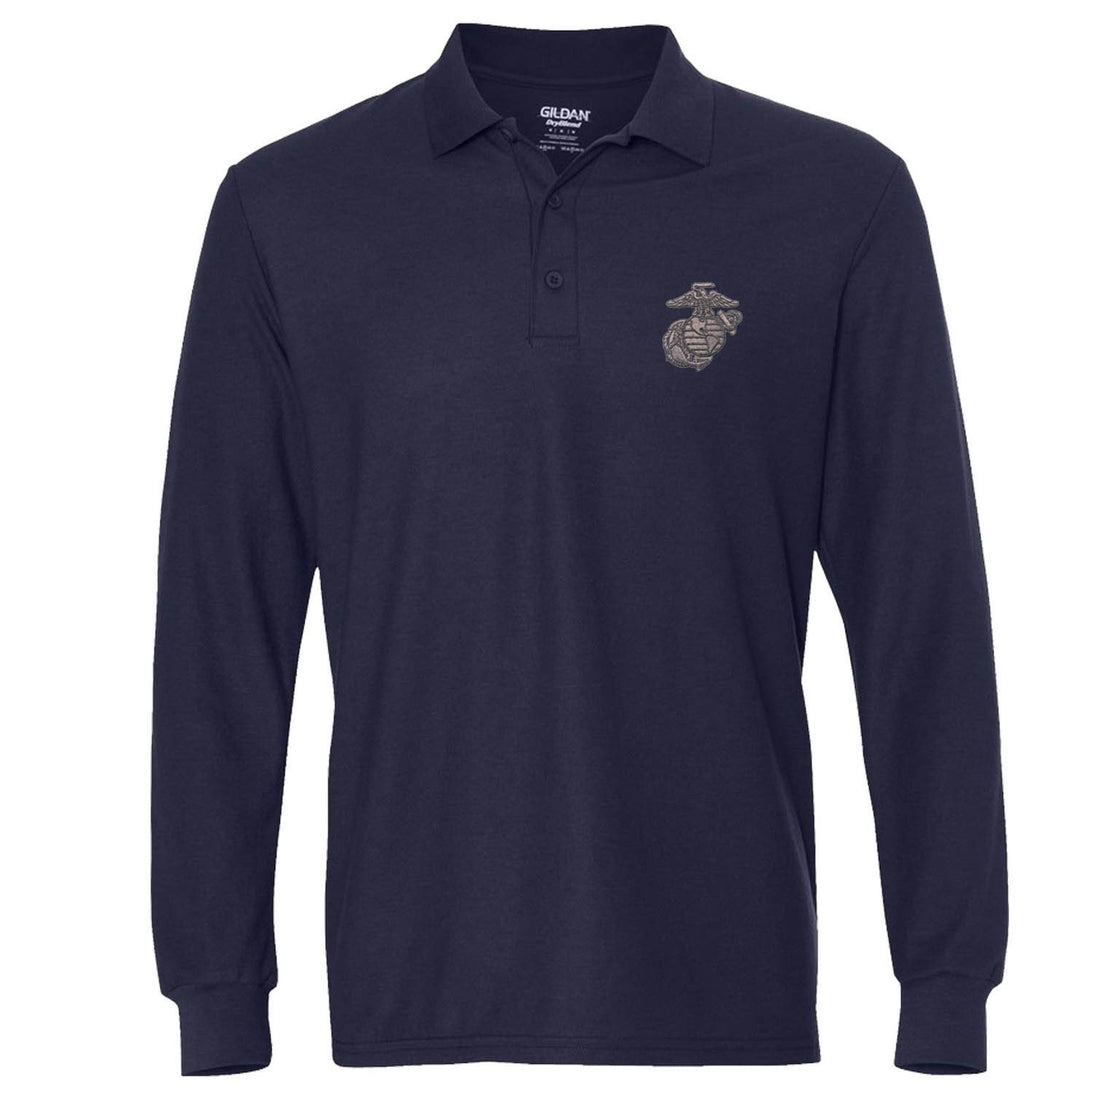 Gunmetal Embroidered Long Sleeve Polo (MULTIPLE COLORS) - Marine Corps Direct  - 5